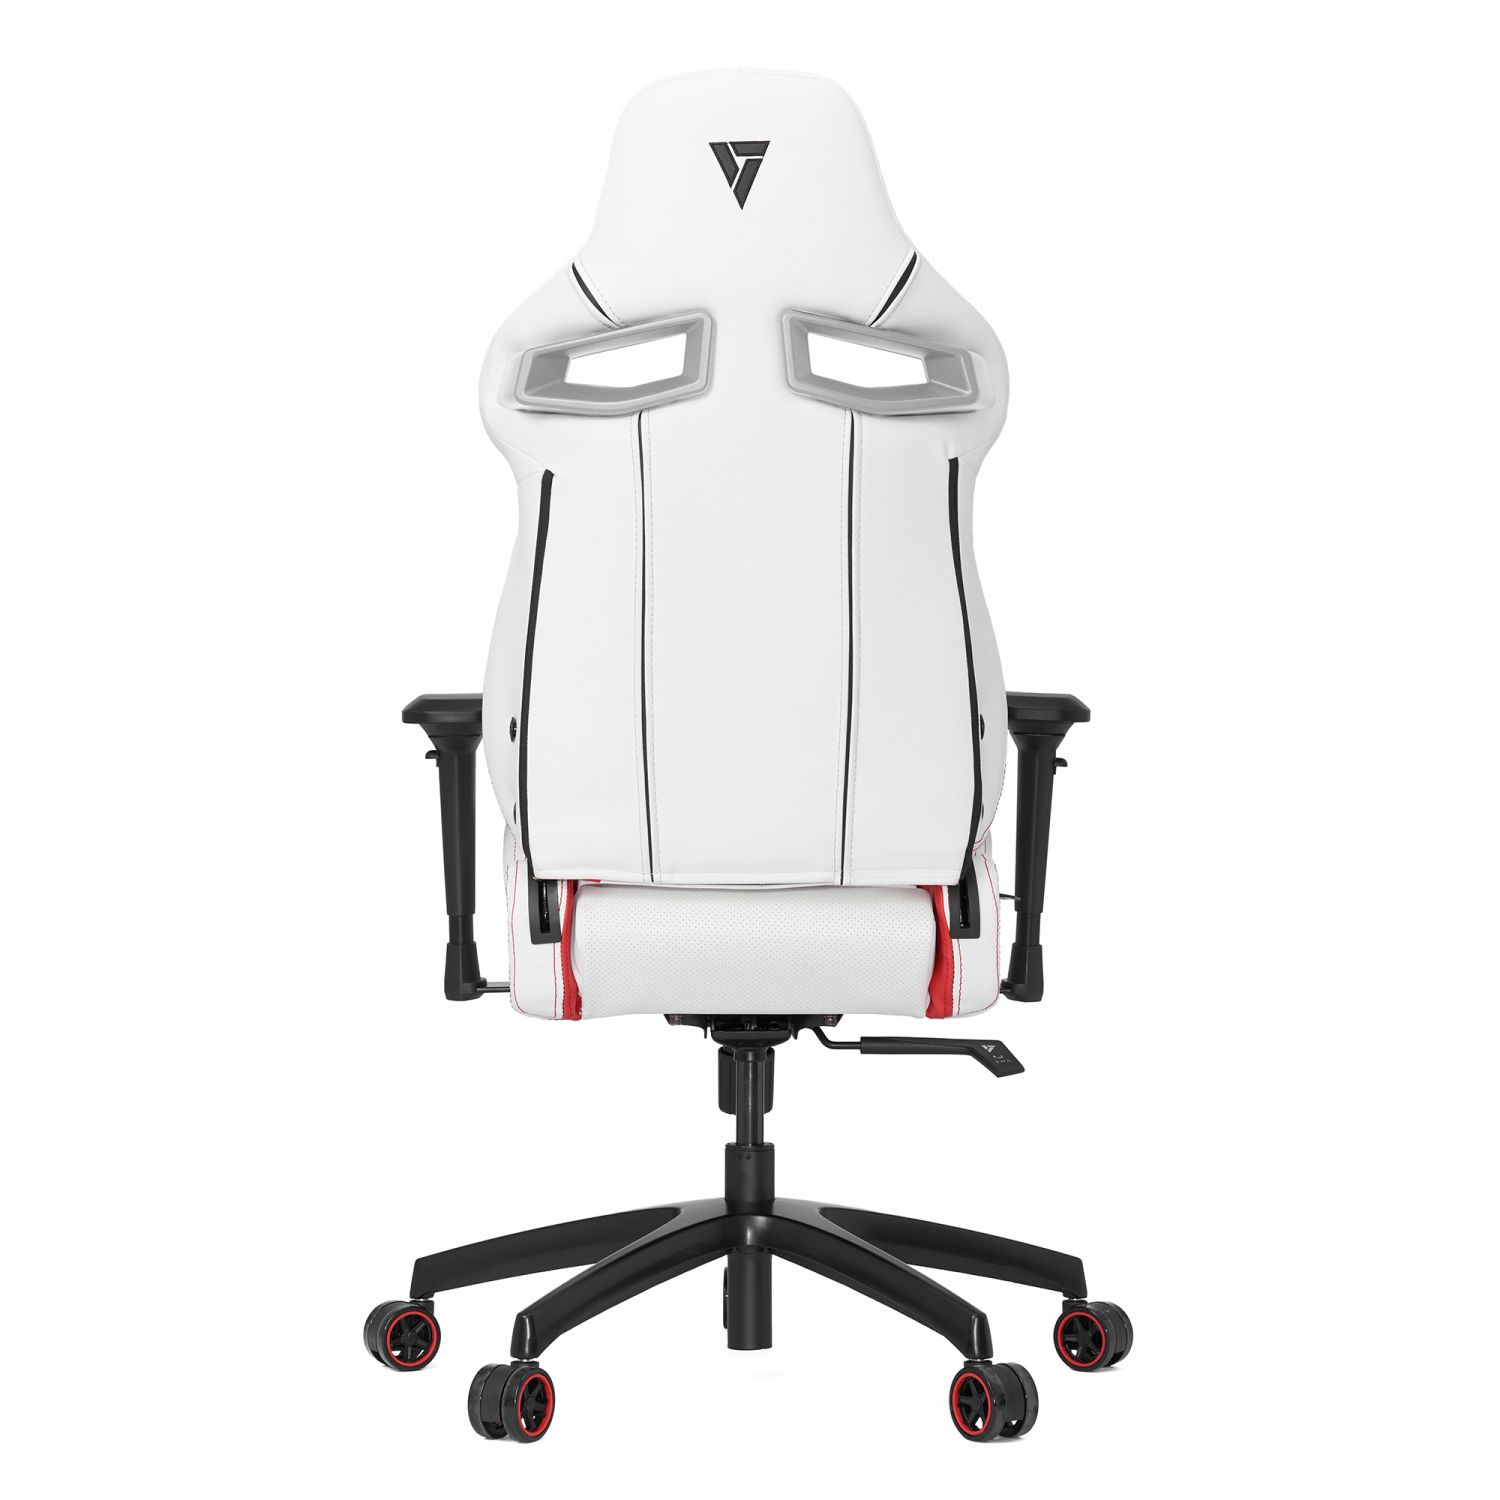 Marvelous Vertagear Sl4000 Gaming Chair White Red Edition Nordic Andrewgaddart Wooden Chair Designs For Living Room Andrewgaddartcom